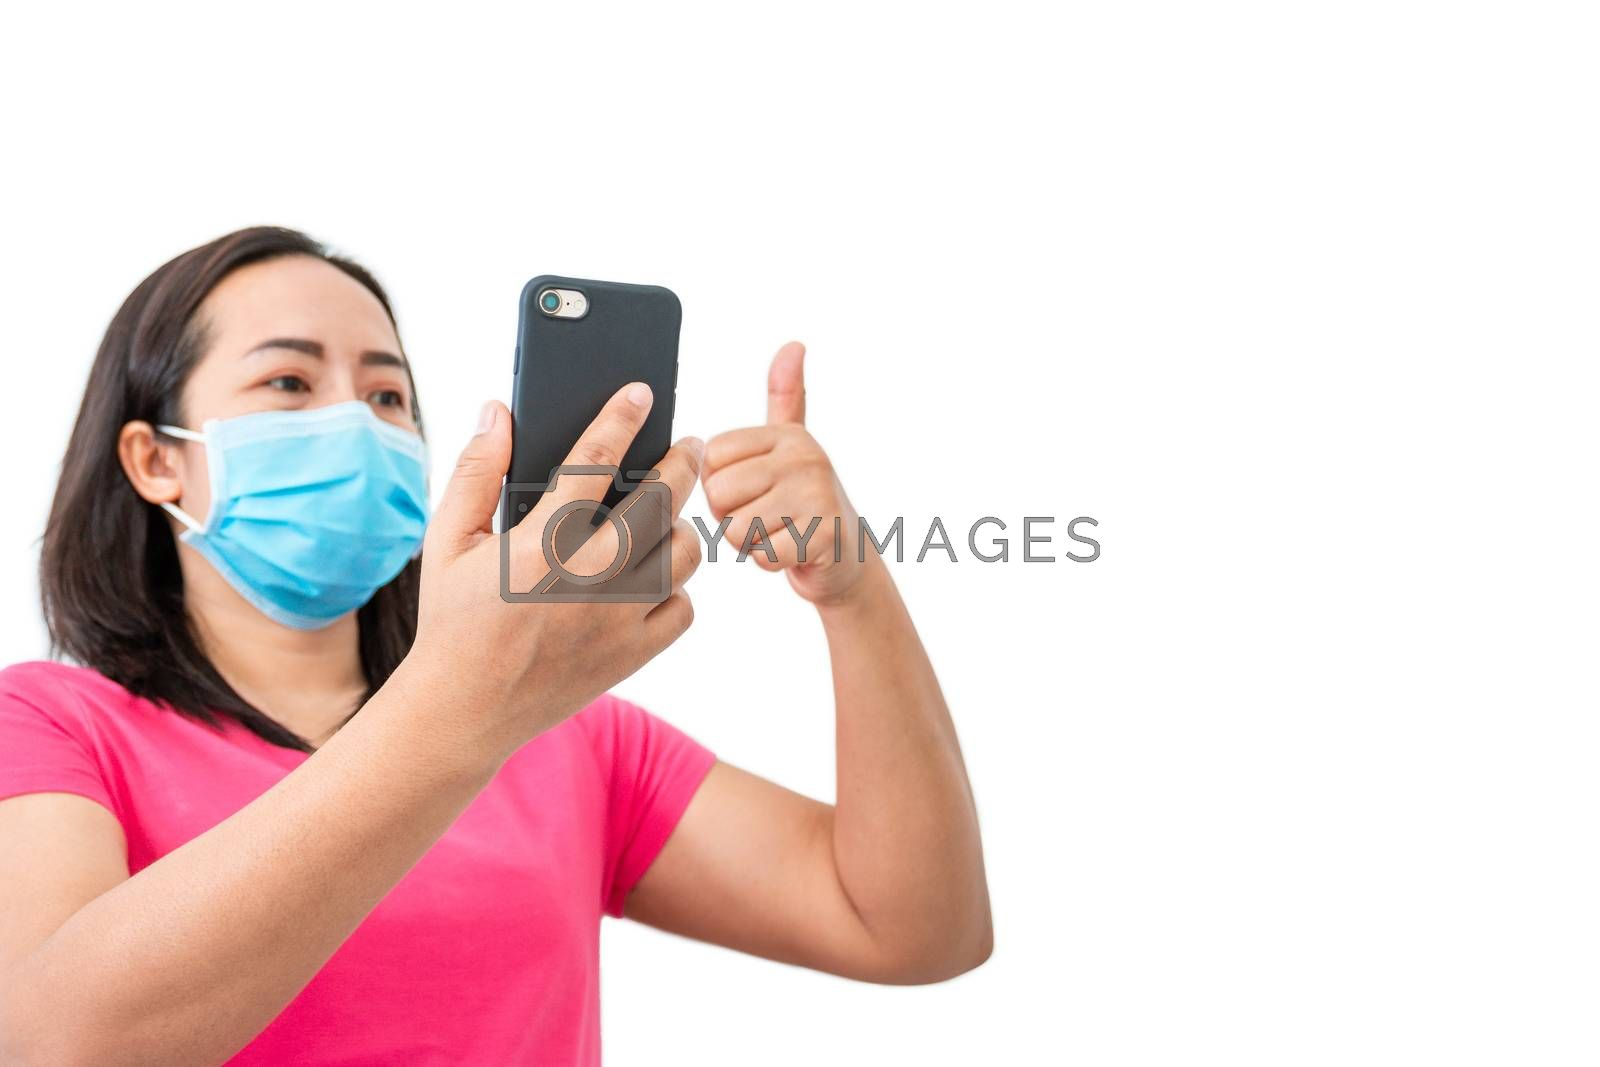 Corona virus (COVID-19), During detention at home Masked women use phones to make video calls to friends.